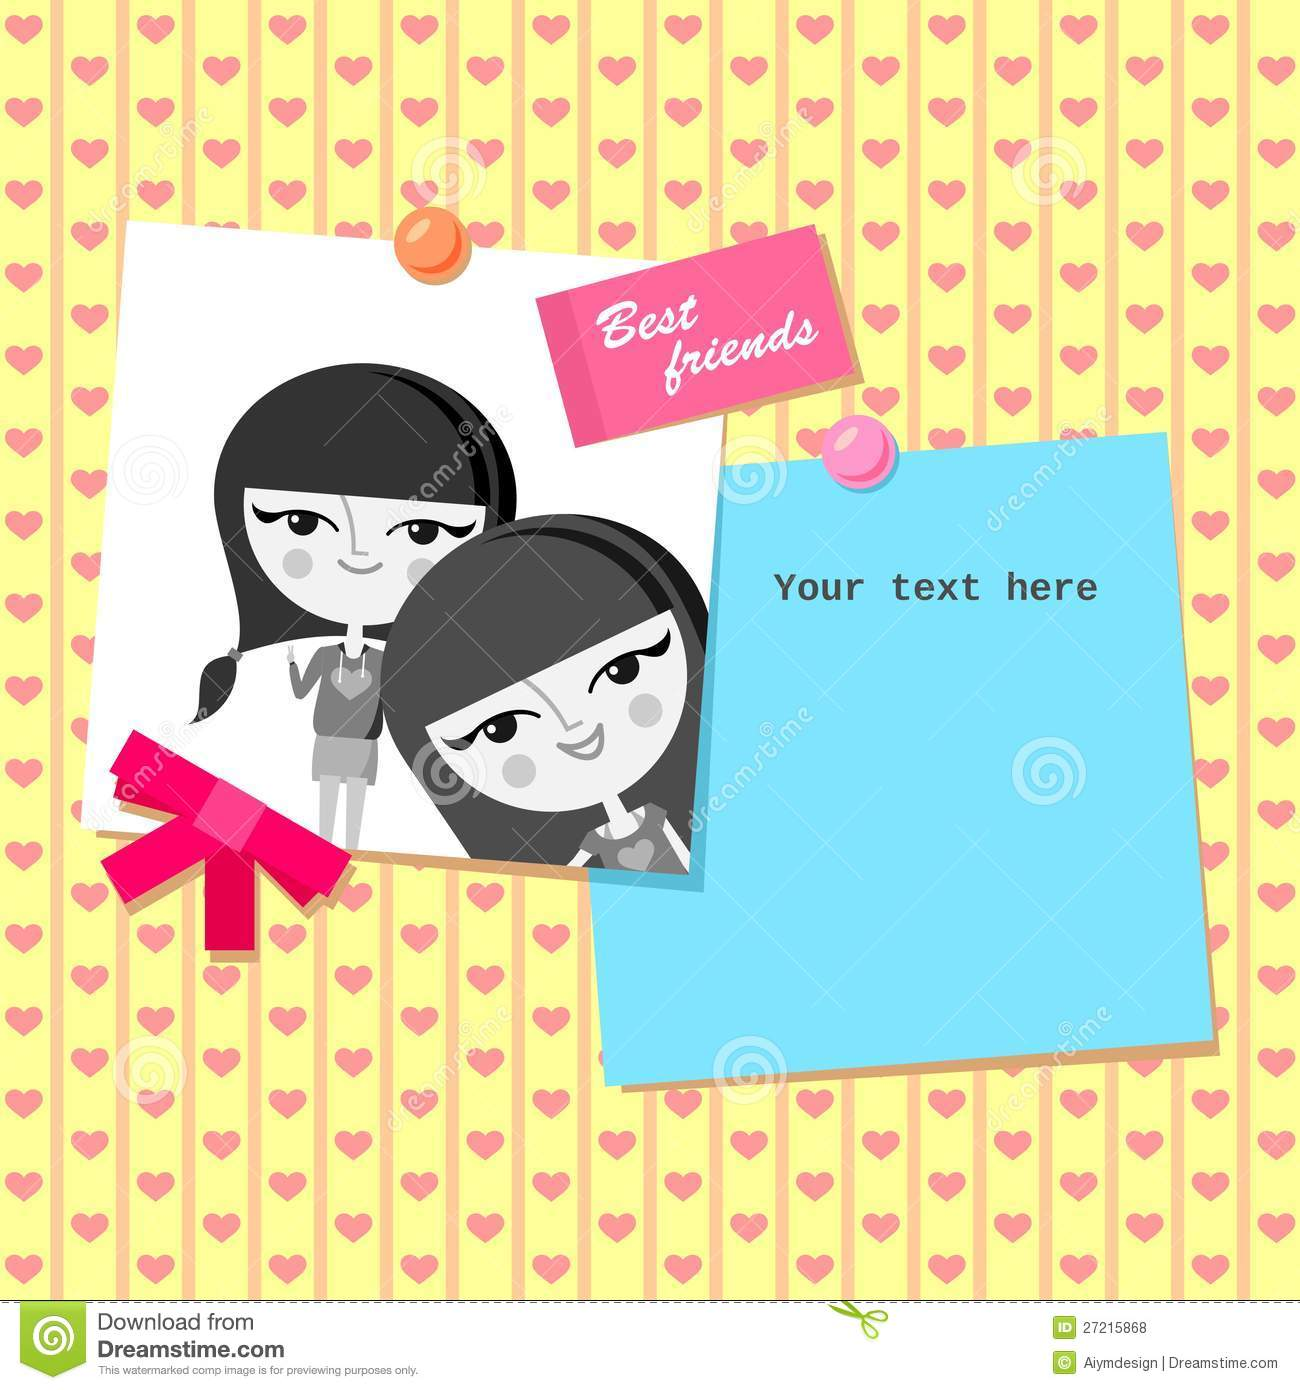 Greeting card design with best friends photo stock vector greeting card design with best friends photo royalty free stock photos kristyandbryce Image collections